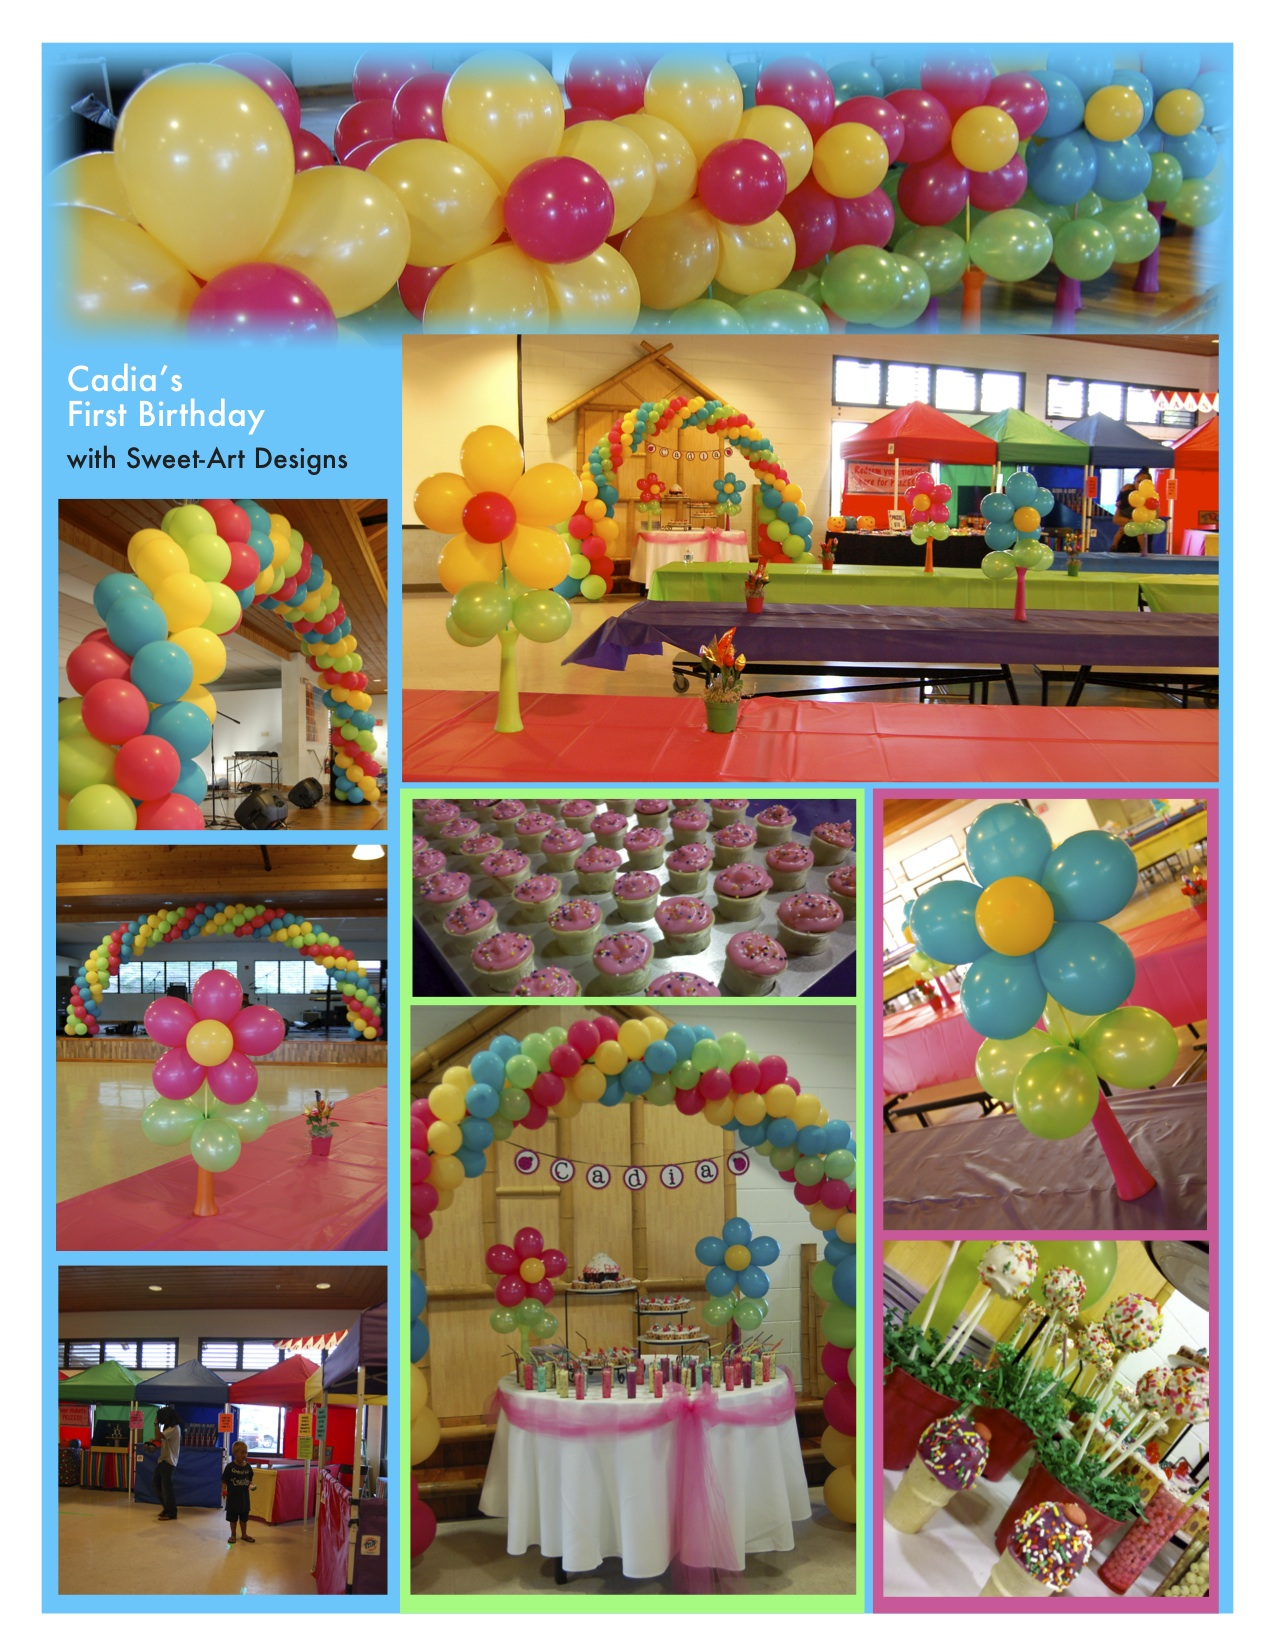 301 moved permanently for 1st birthday balloon decoration images